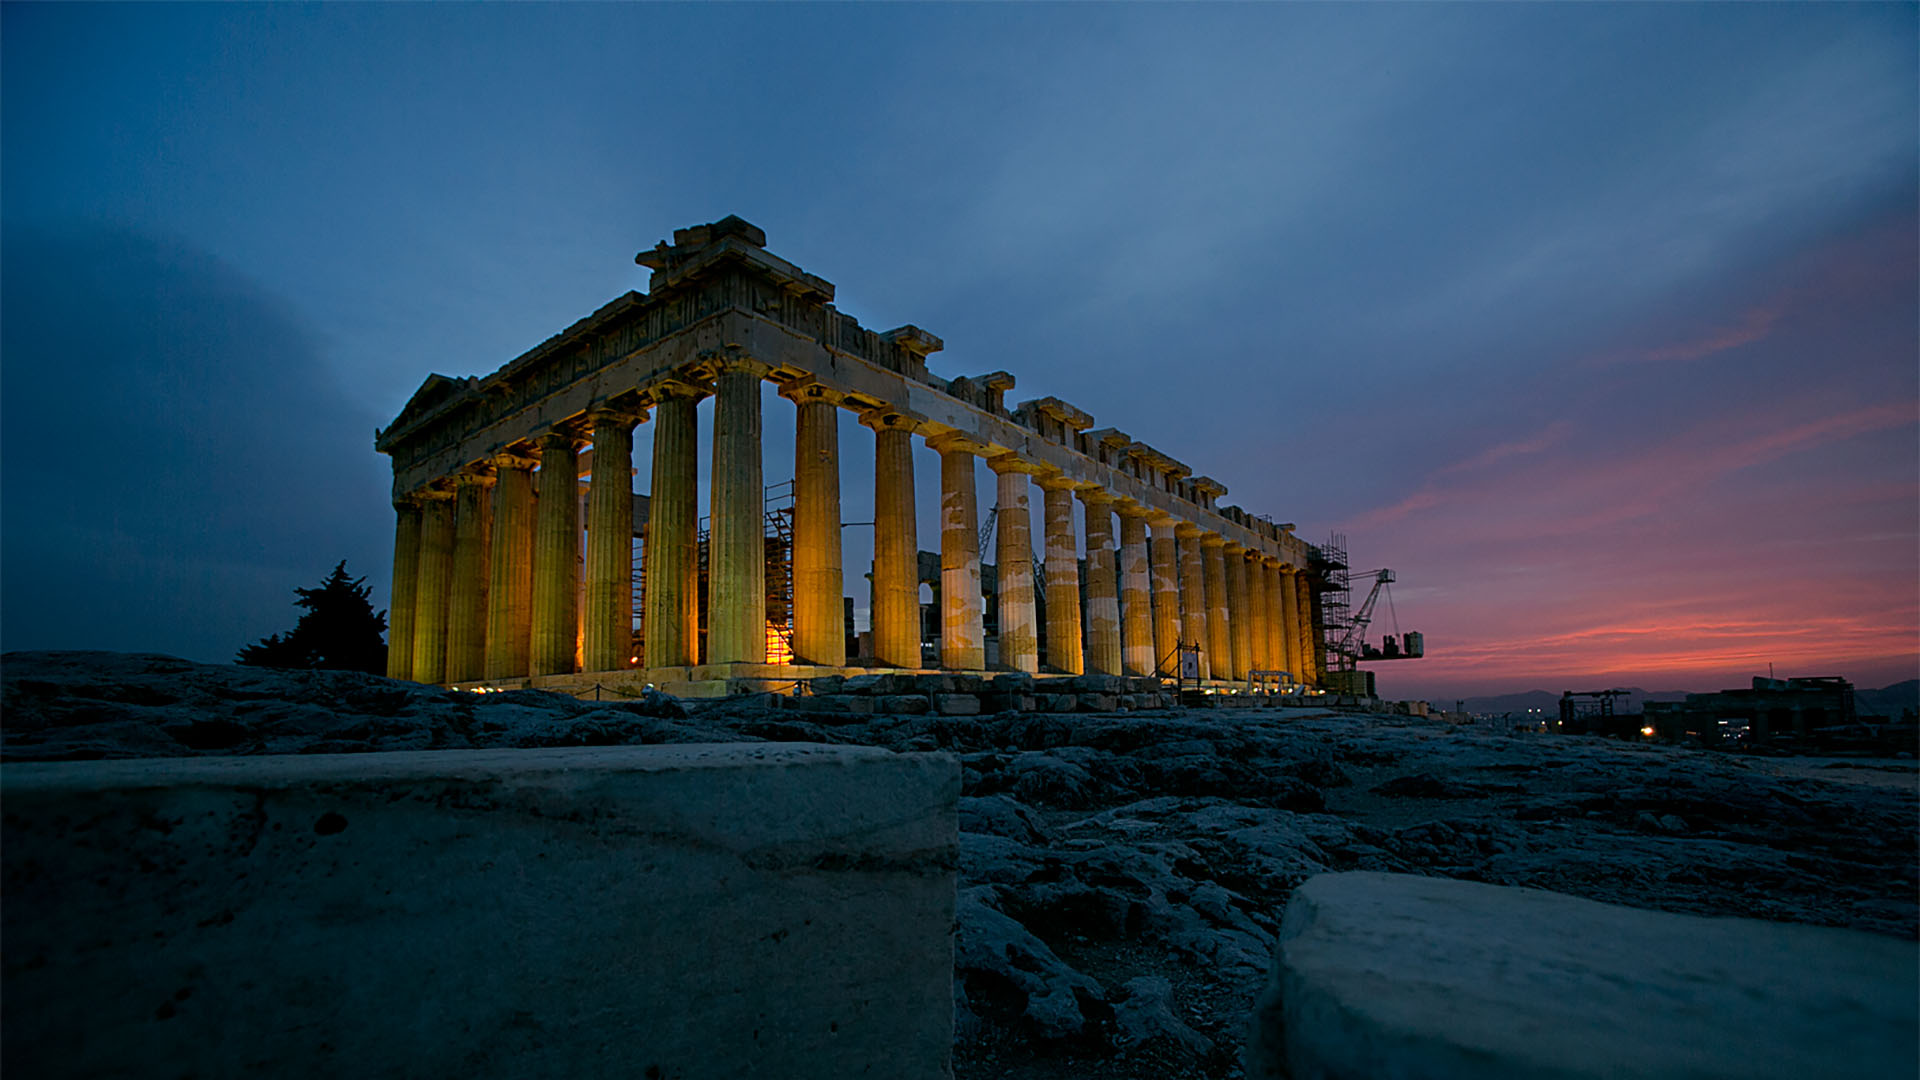 The Parthenon lights up as the Sun dips below the horizon.